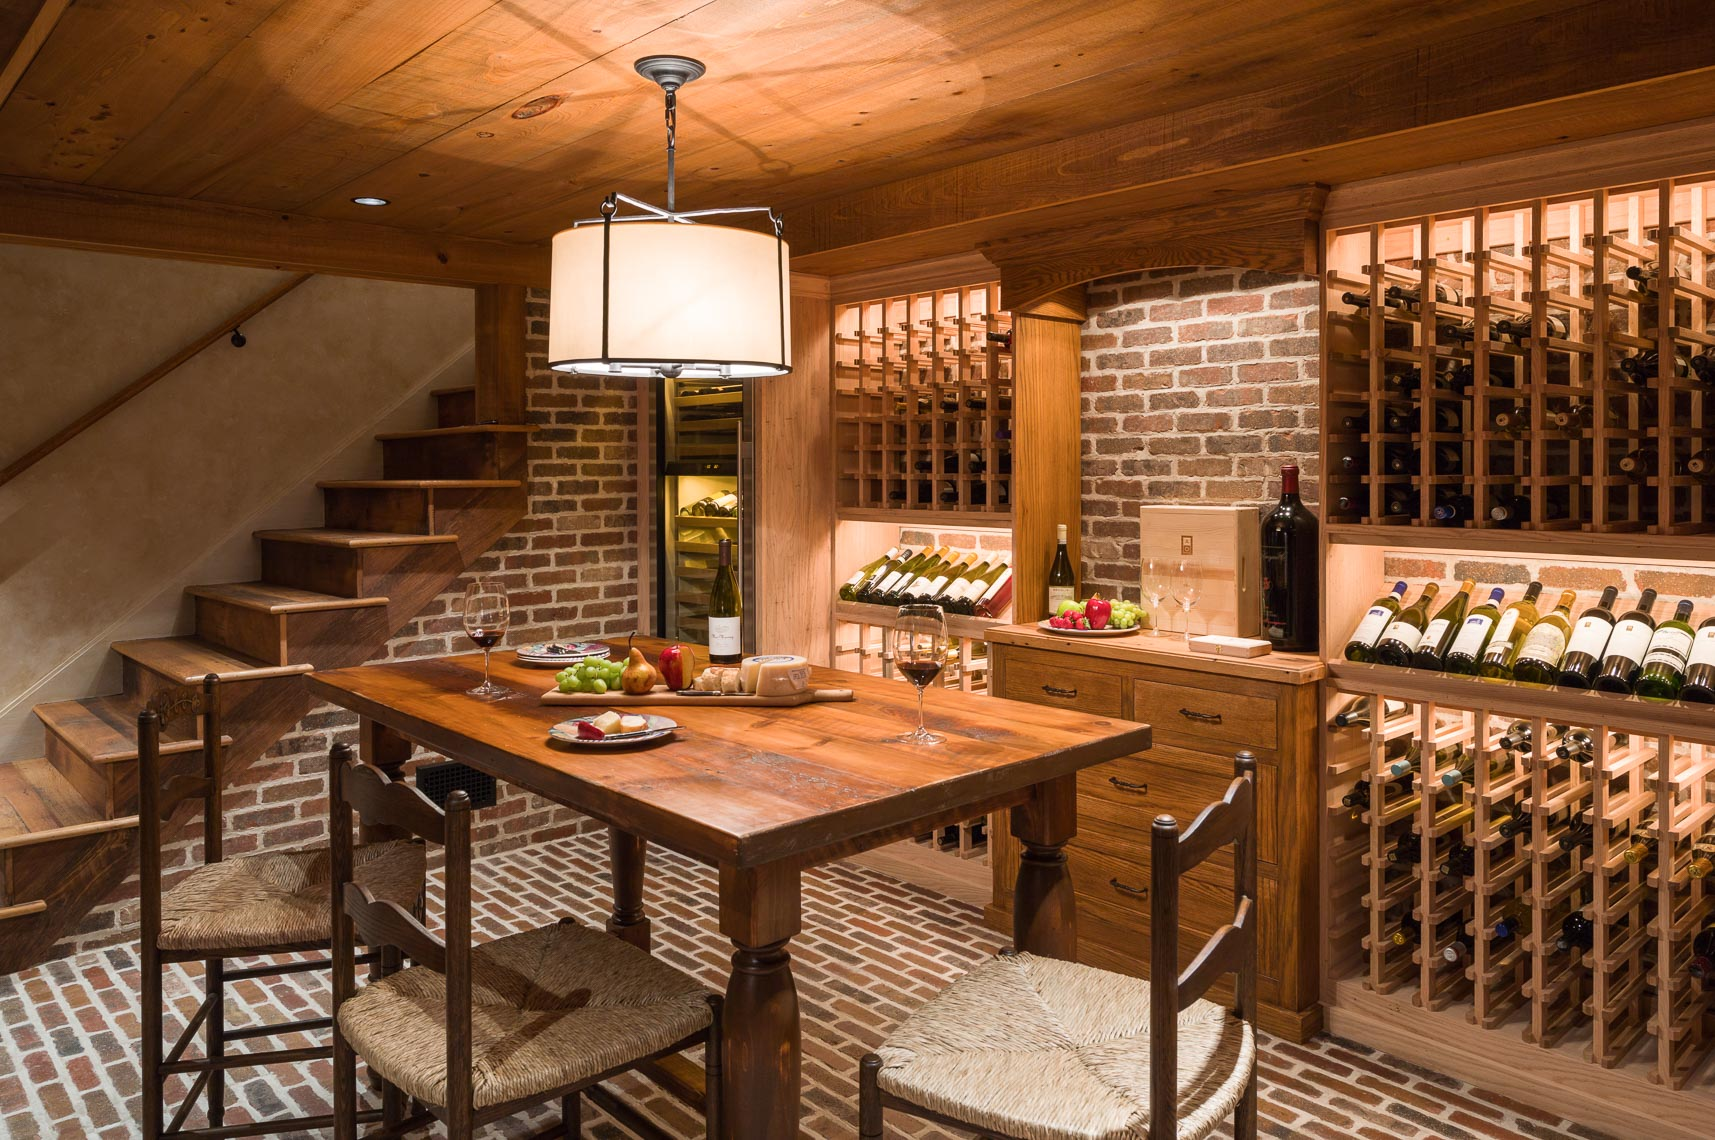 Wine Cellar Design - Bucks County, PA Interior Photographer